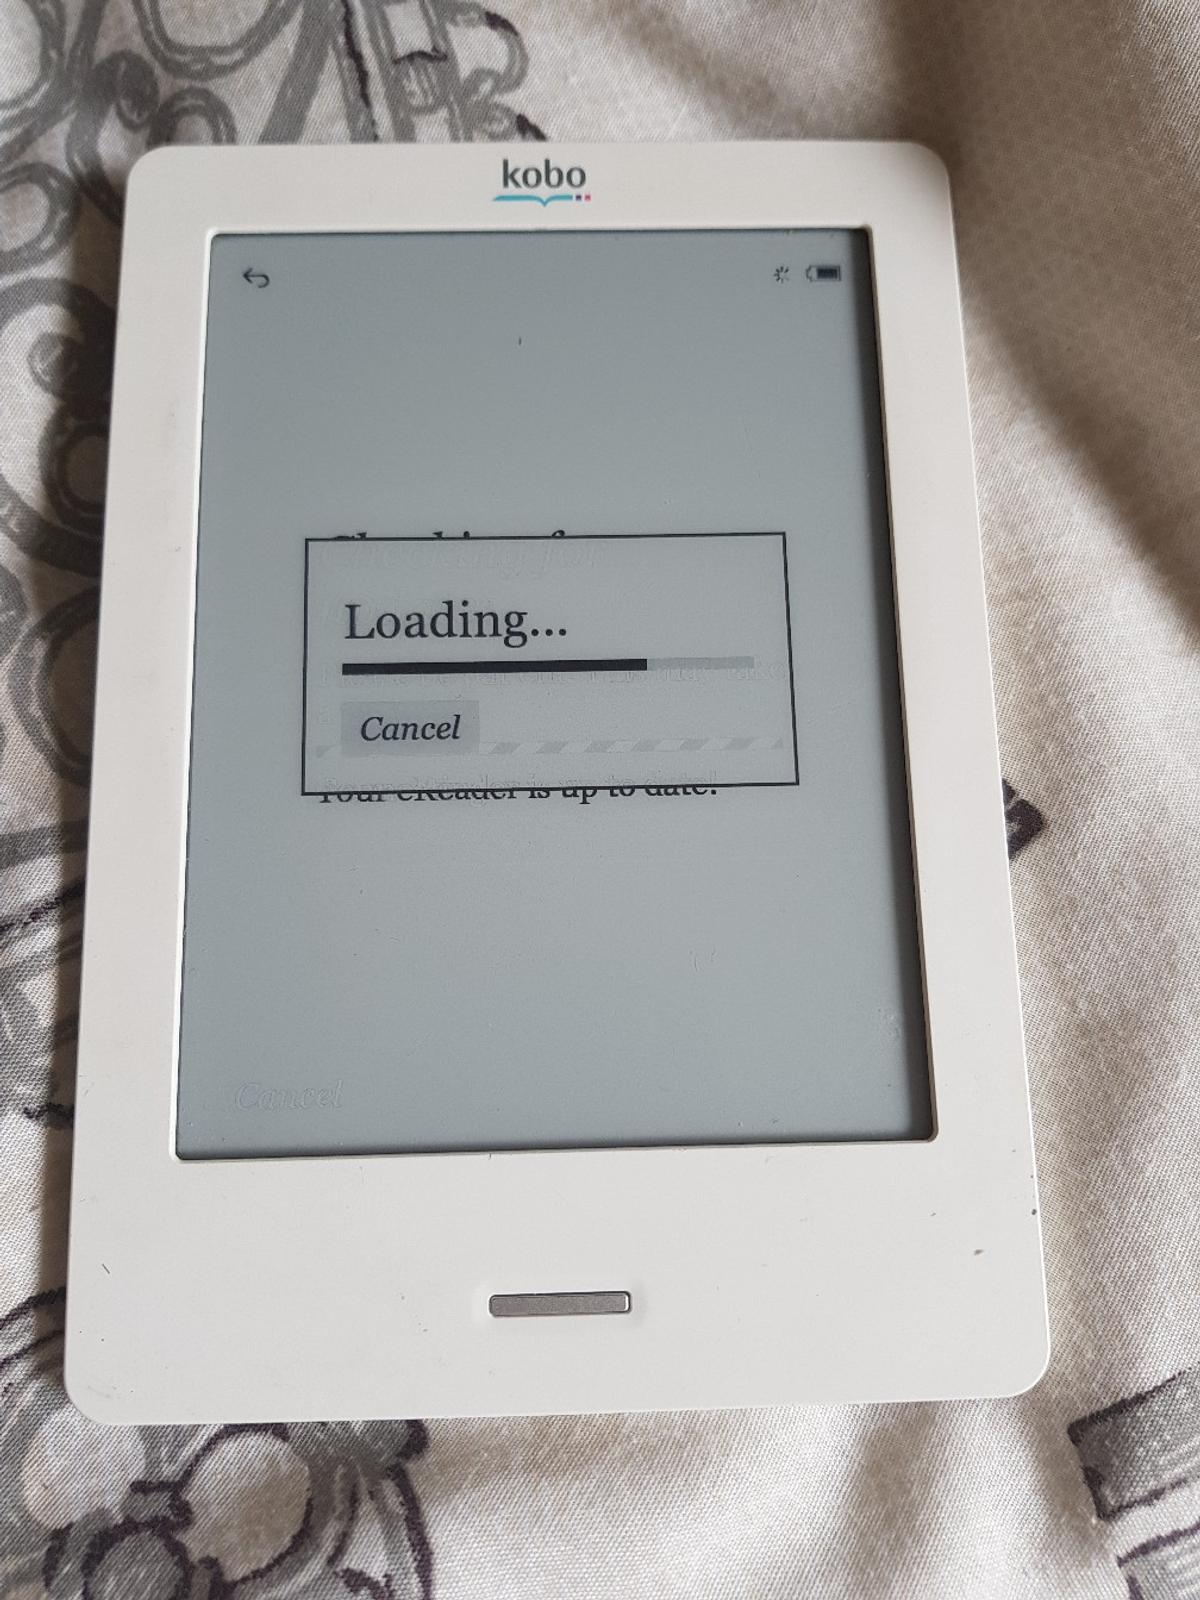 kobo ereader in Doncaster for £20 00 for sale - Shpock